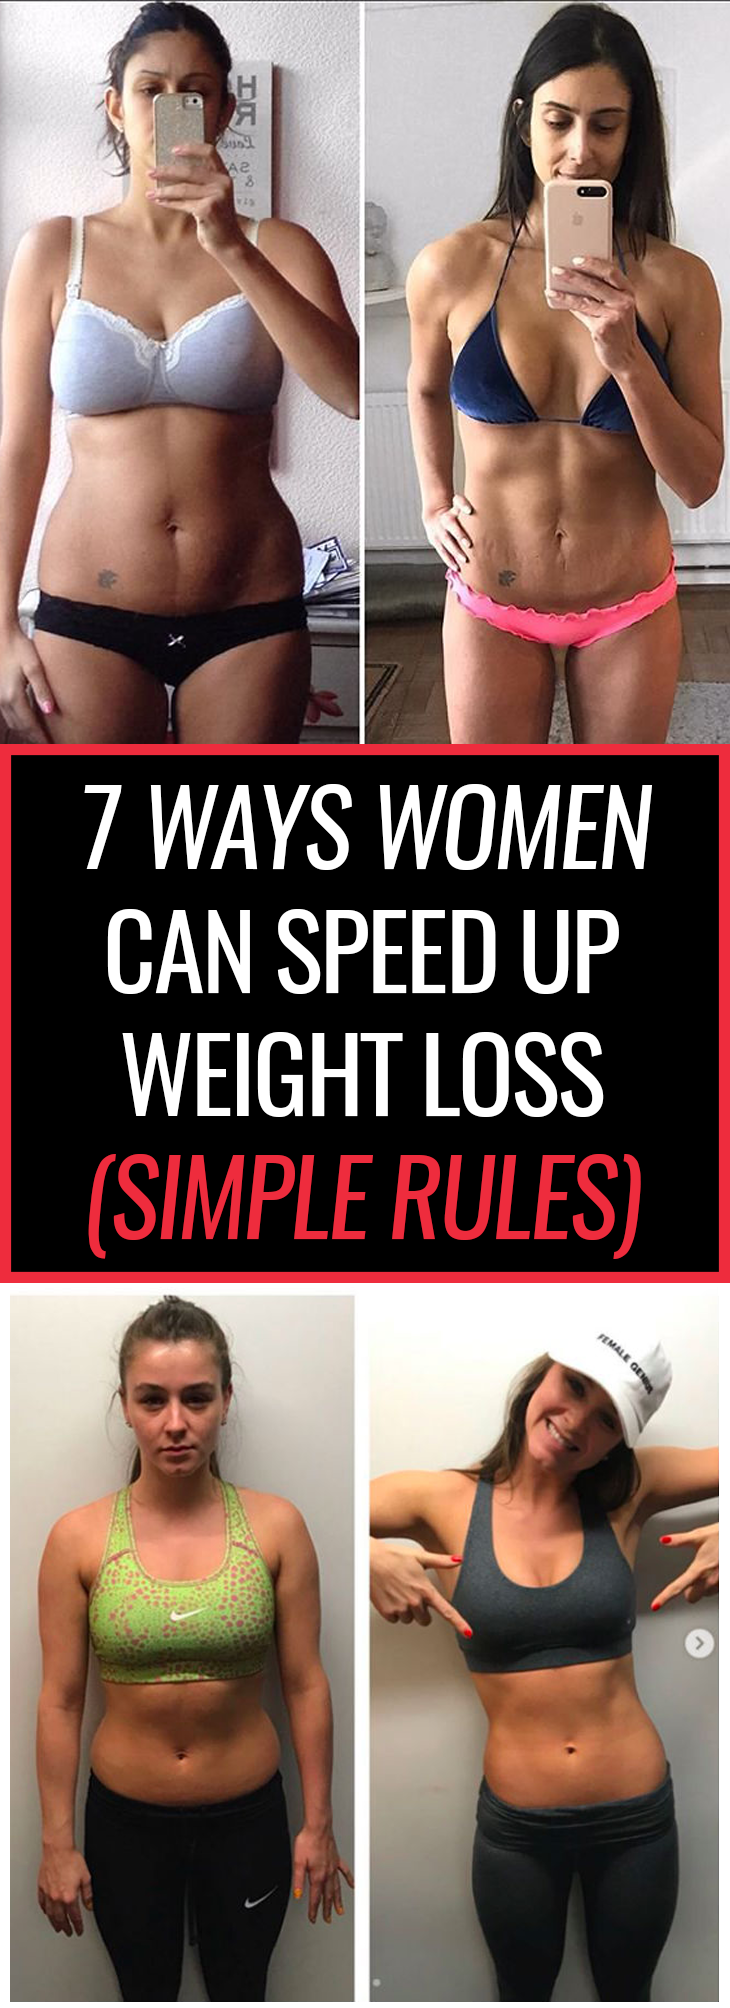 If you want to lose weight the healthy way, then read on and follow these 7 simple steps we've summed up for you. It might be the answer you've been looking for.